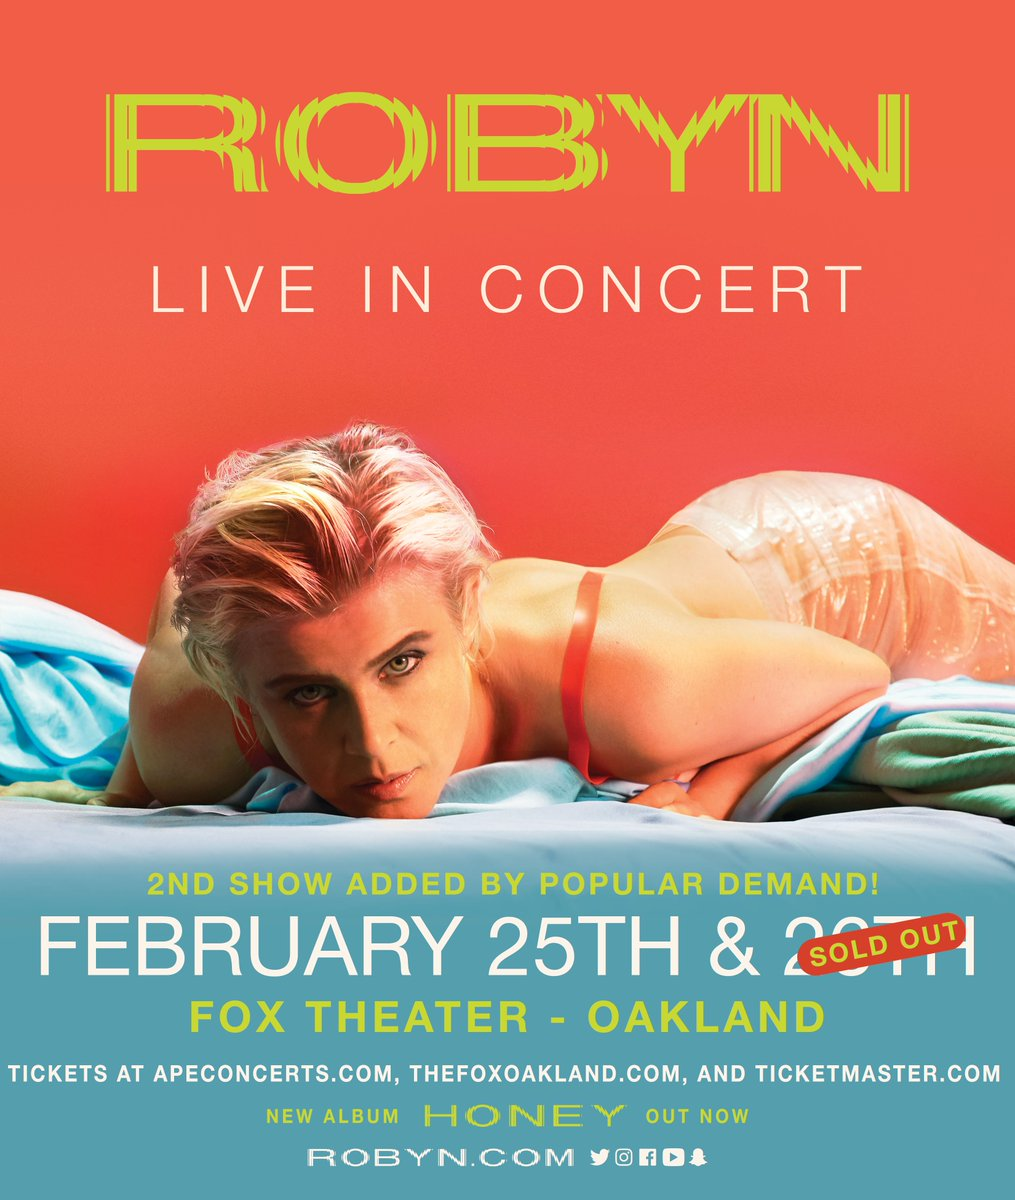 Adding a second show at Fox Theatre in Oakland, the password for tickets is DYAFA